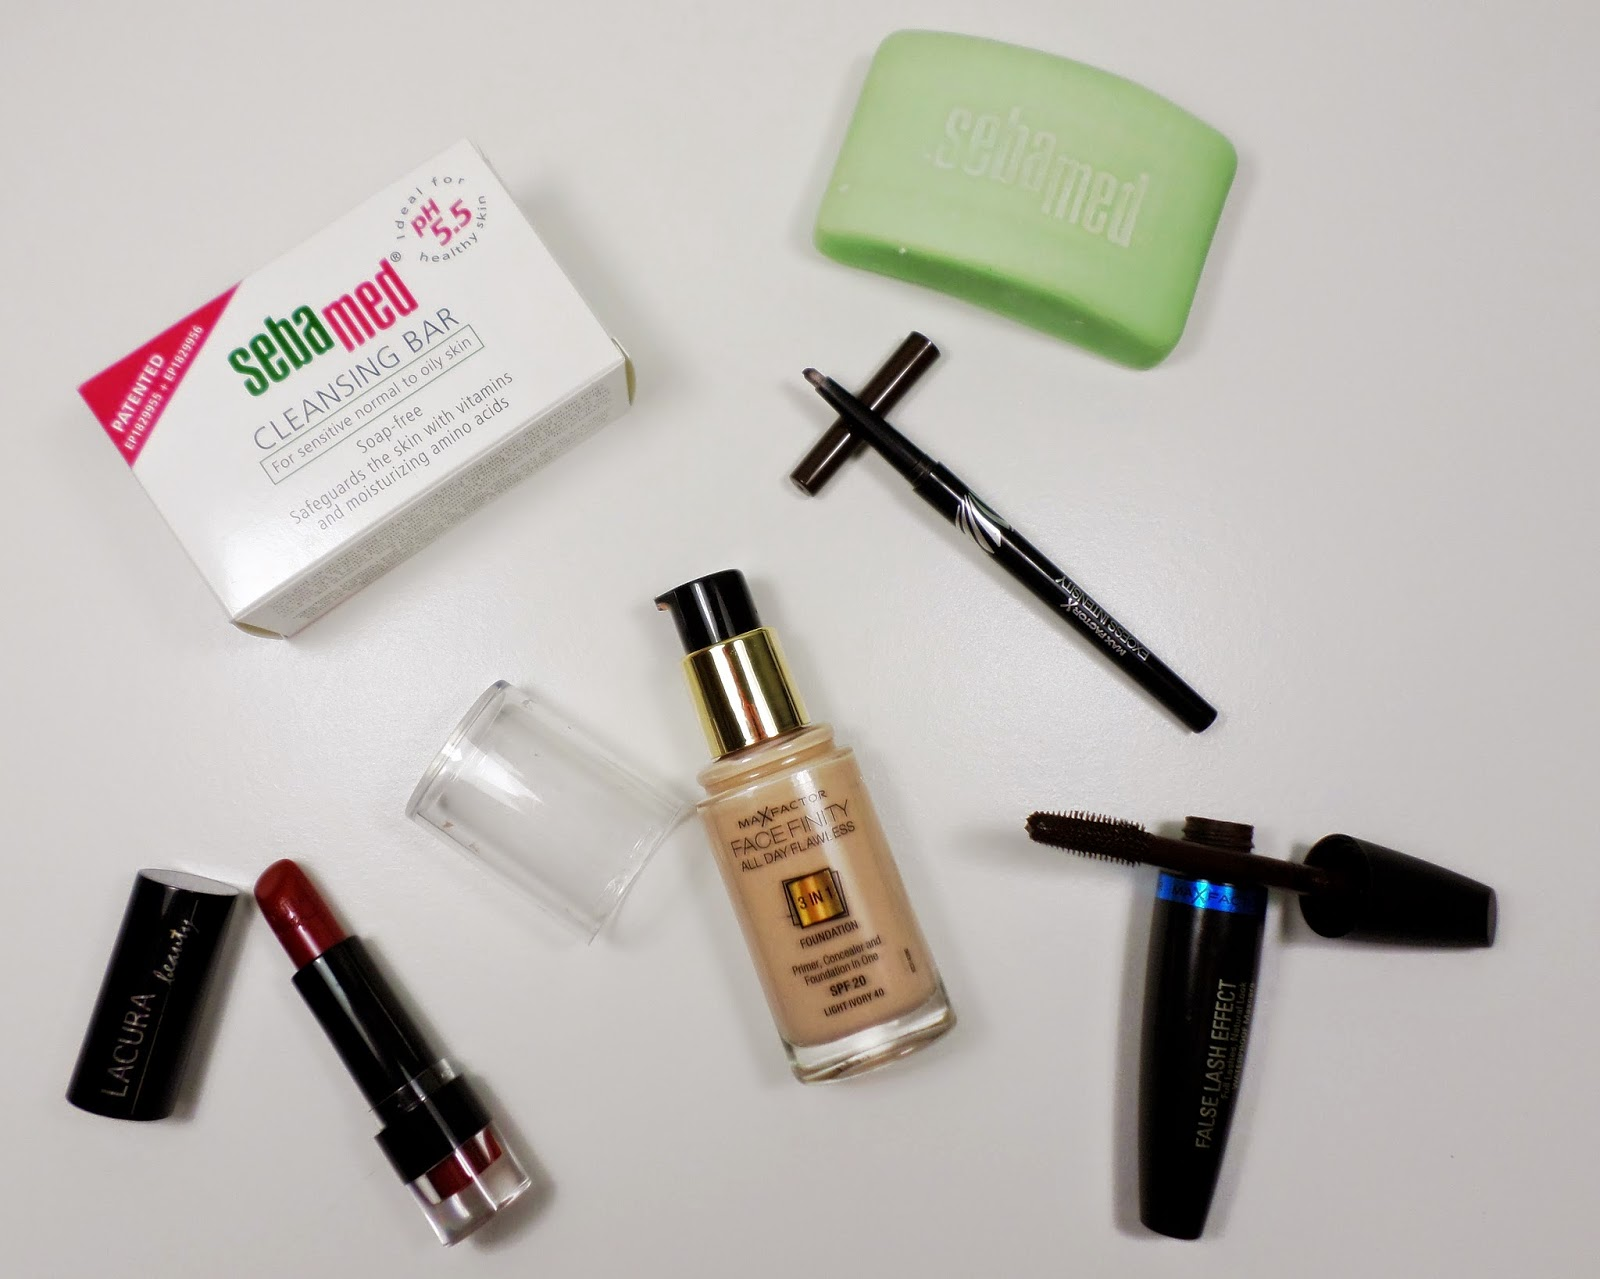 Makeup and Beauty Favourites from March